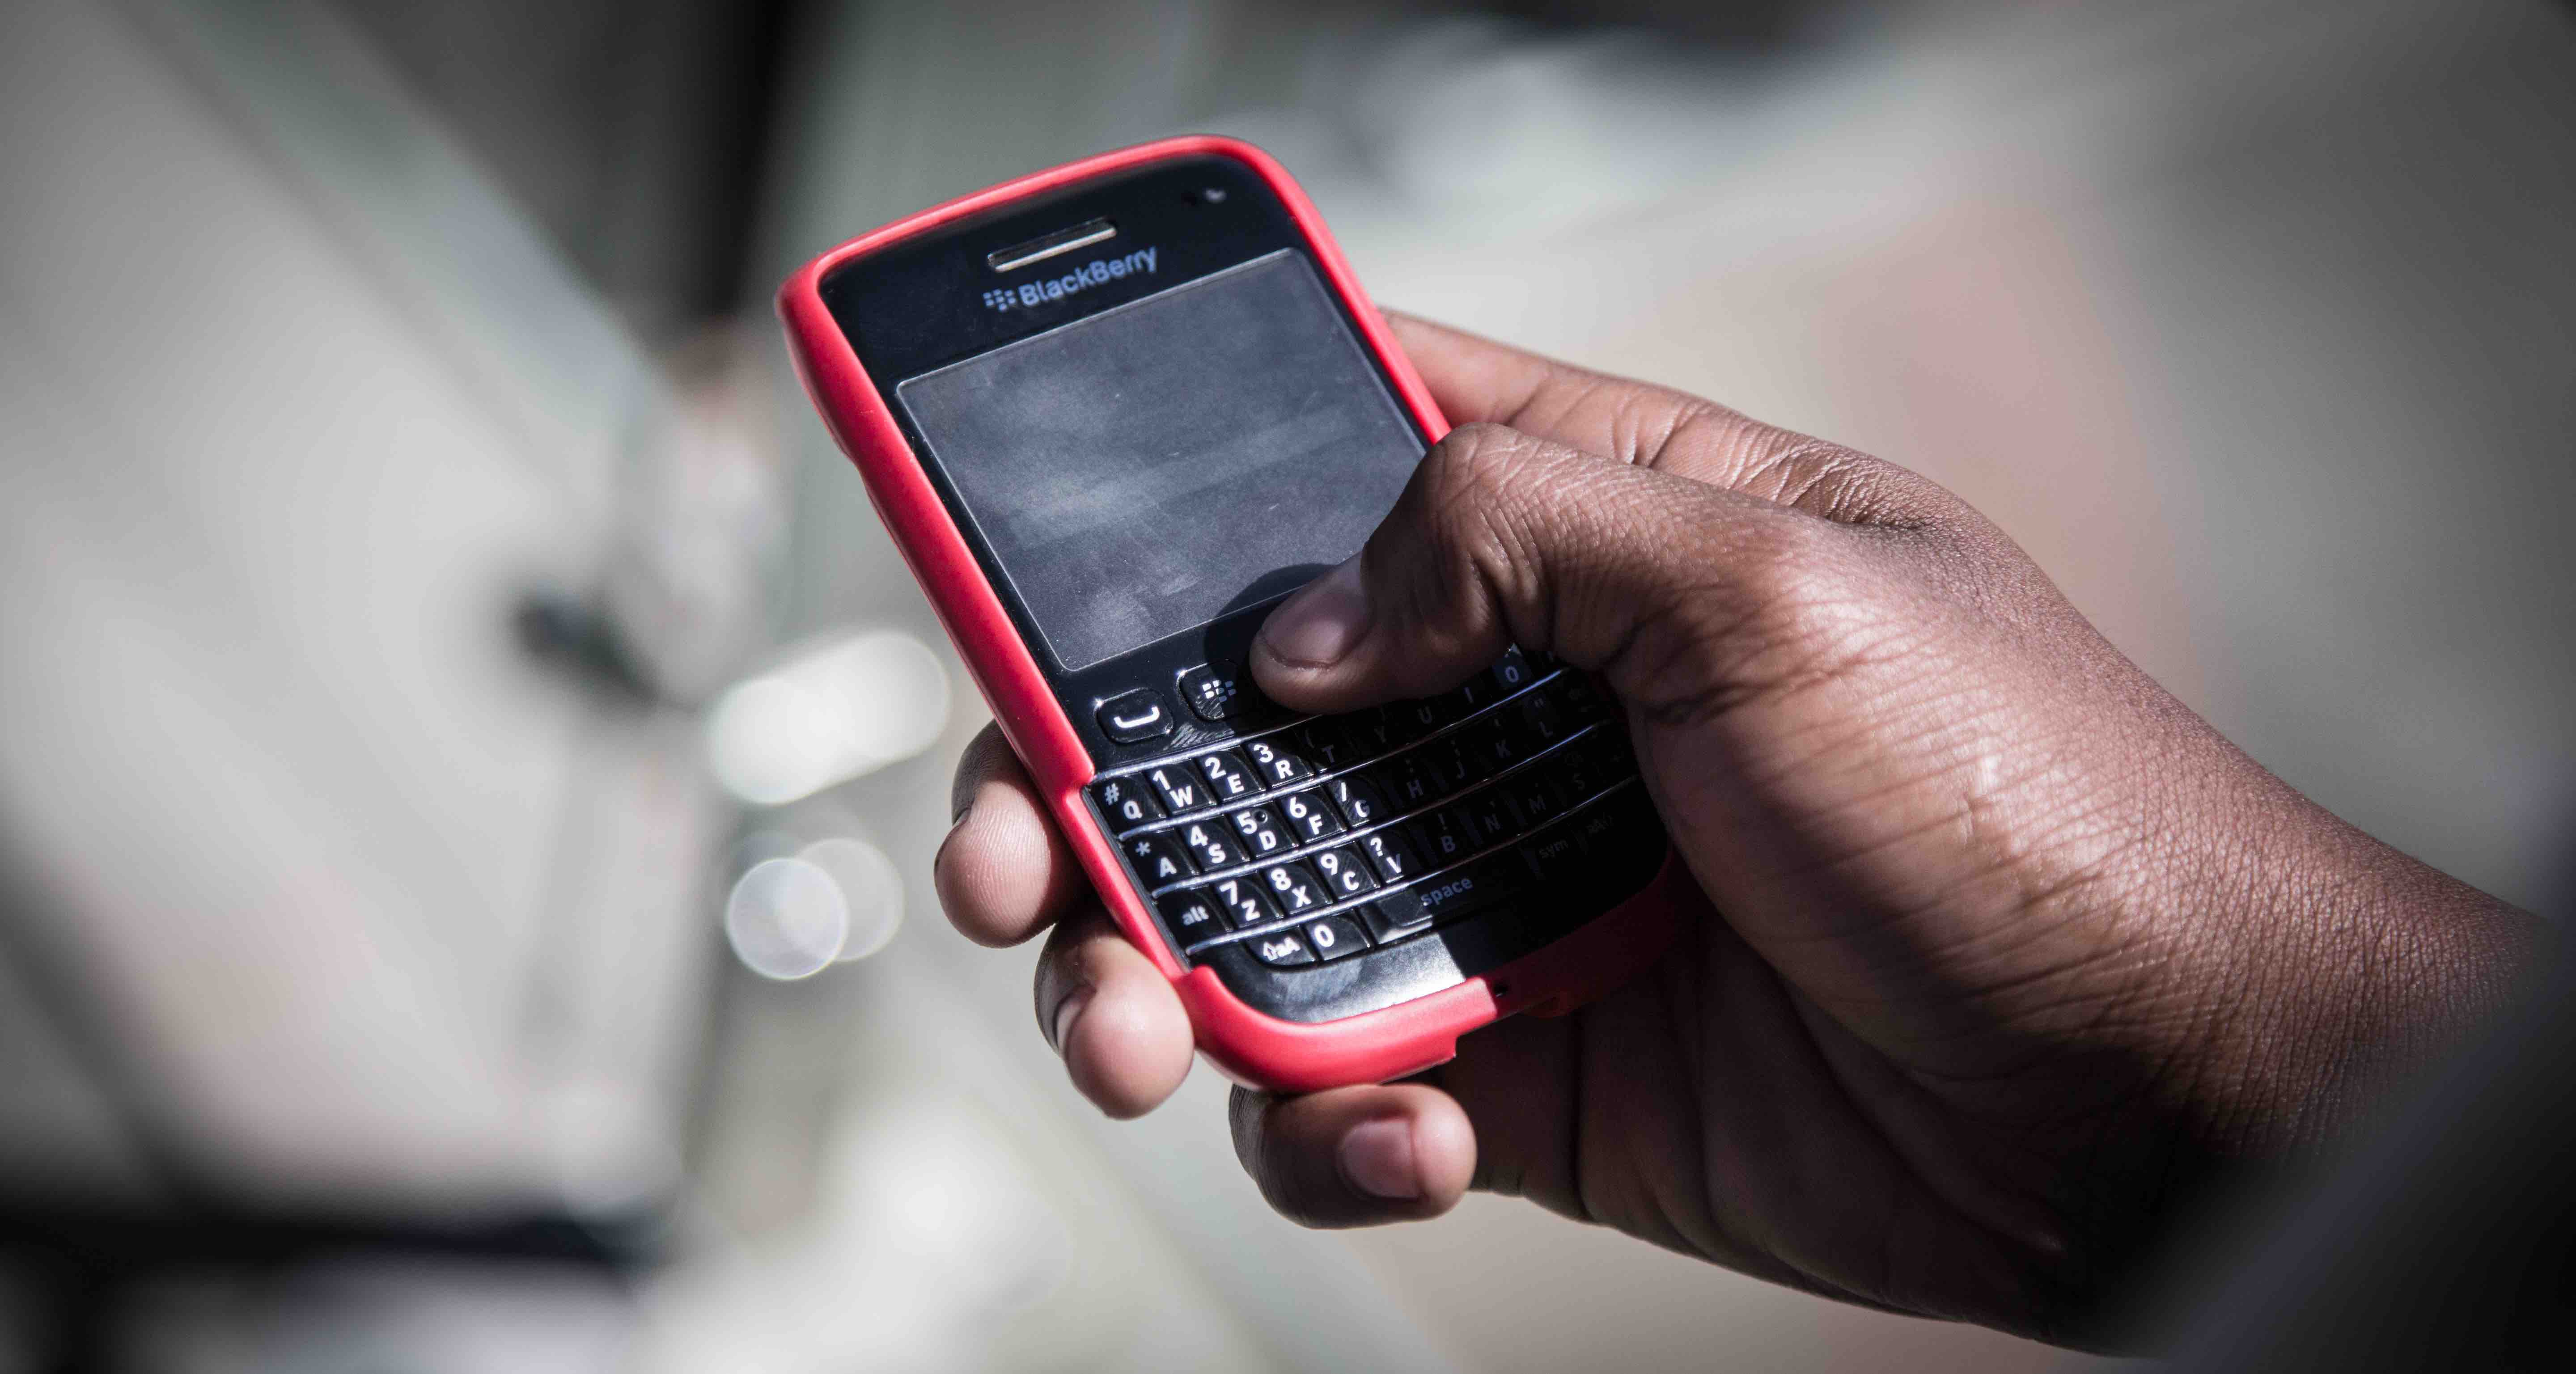 SMS uses in Africa